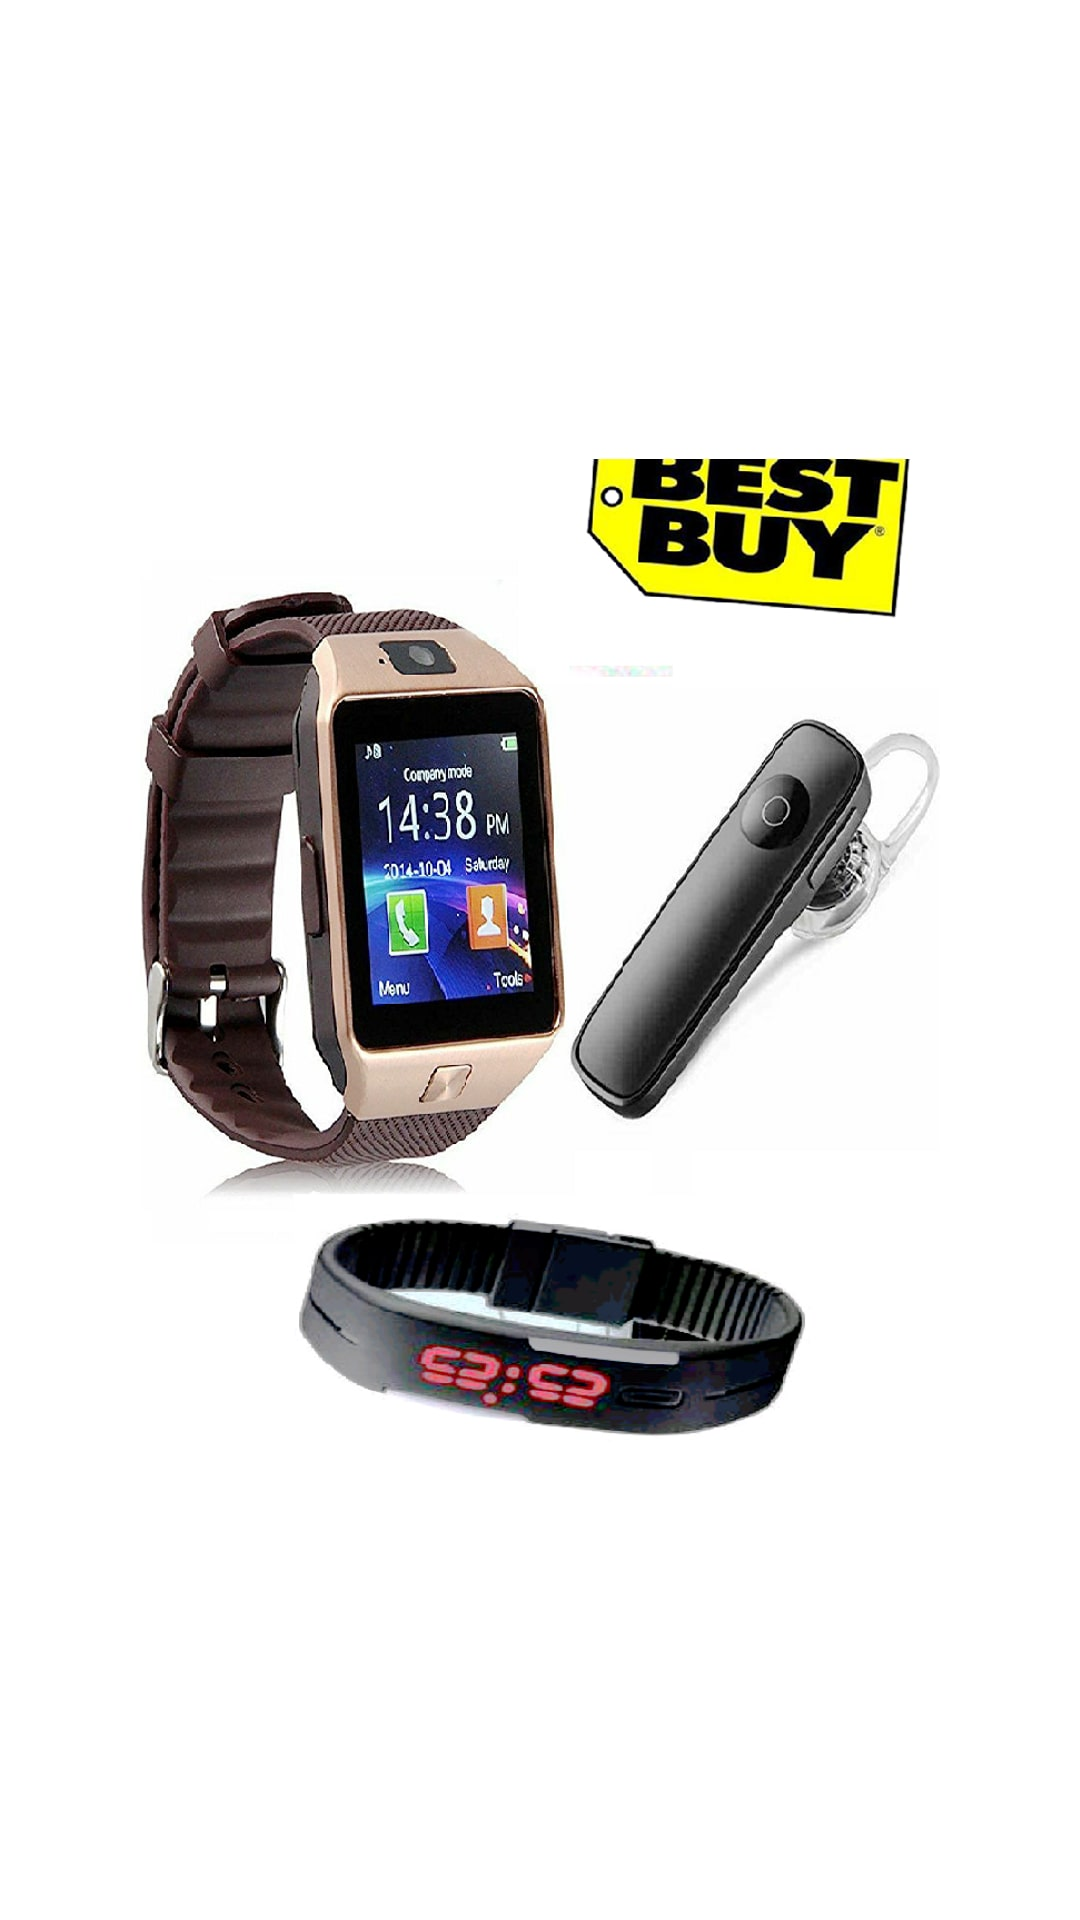 cee75e8c04d https   assetscdn1.paytm.com images catalog product . Best buy combo pack  of dz09 bluetooth smartwatch ...